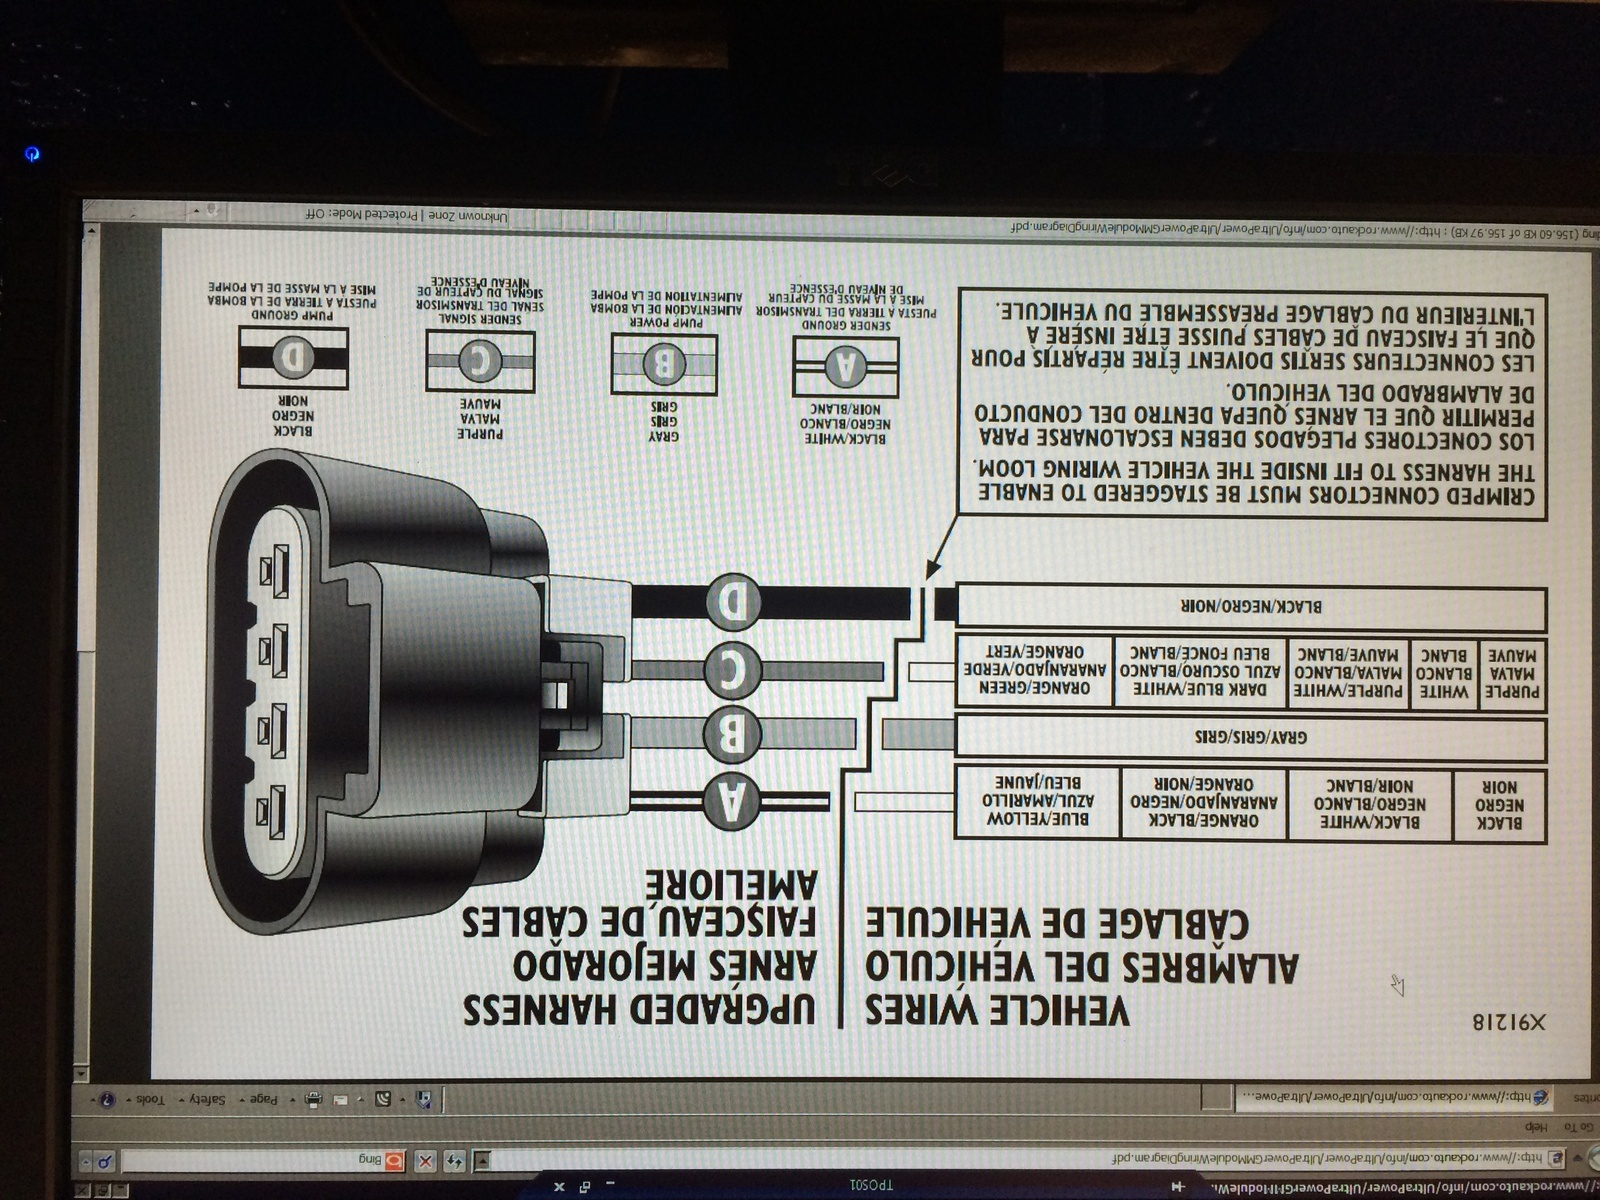 1993 Gmc Fuel Pump Wiring Schematic - DIY Wiring Diagrams •